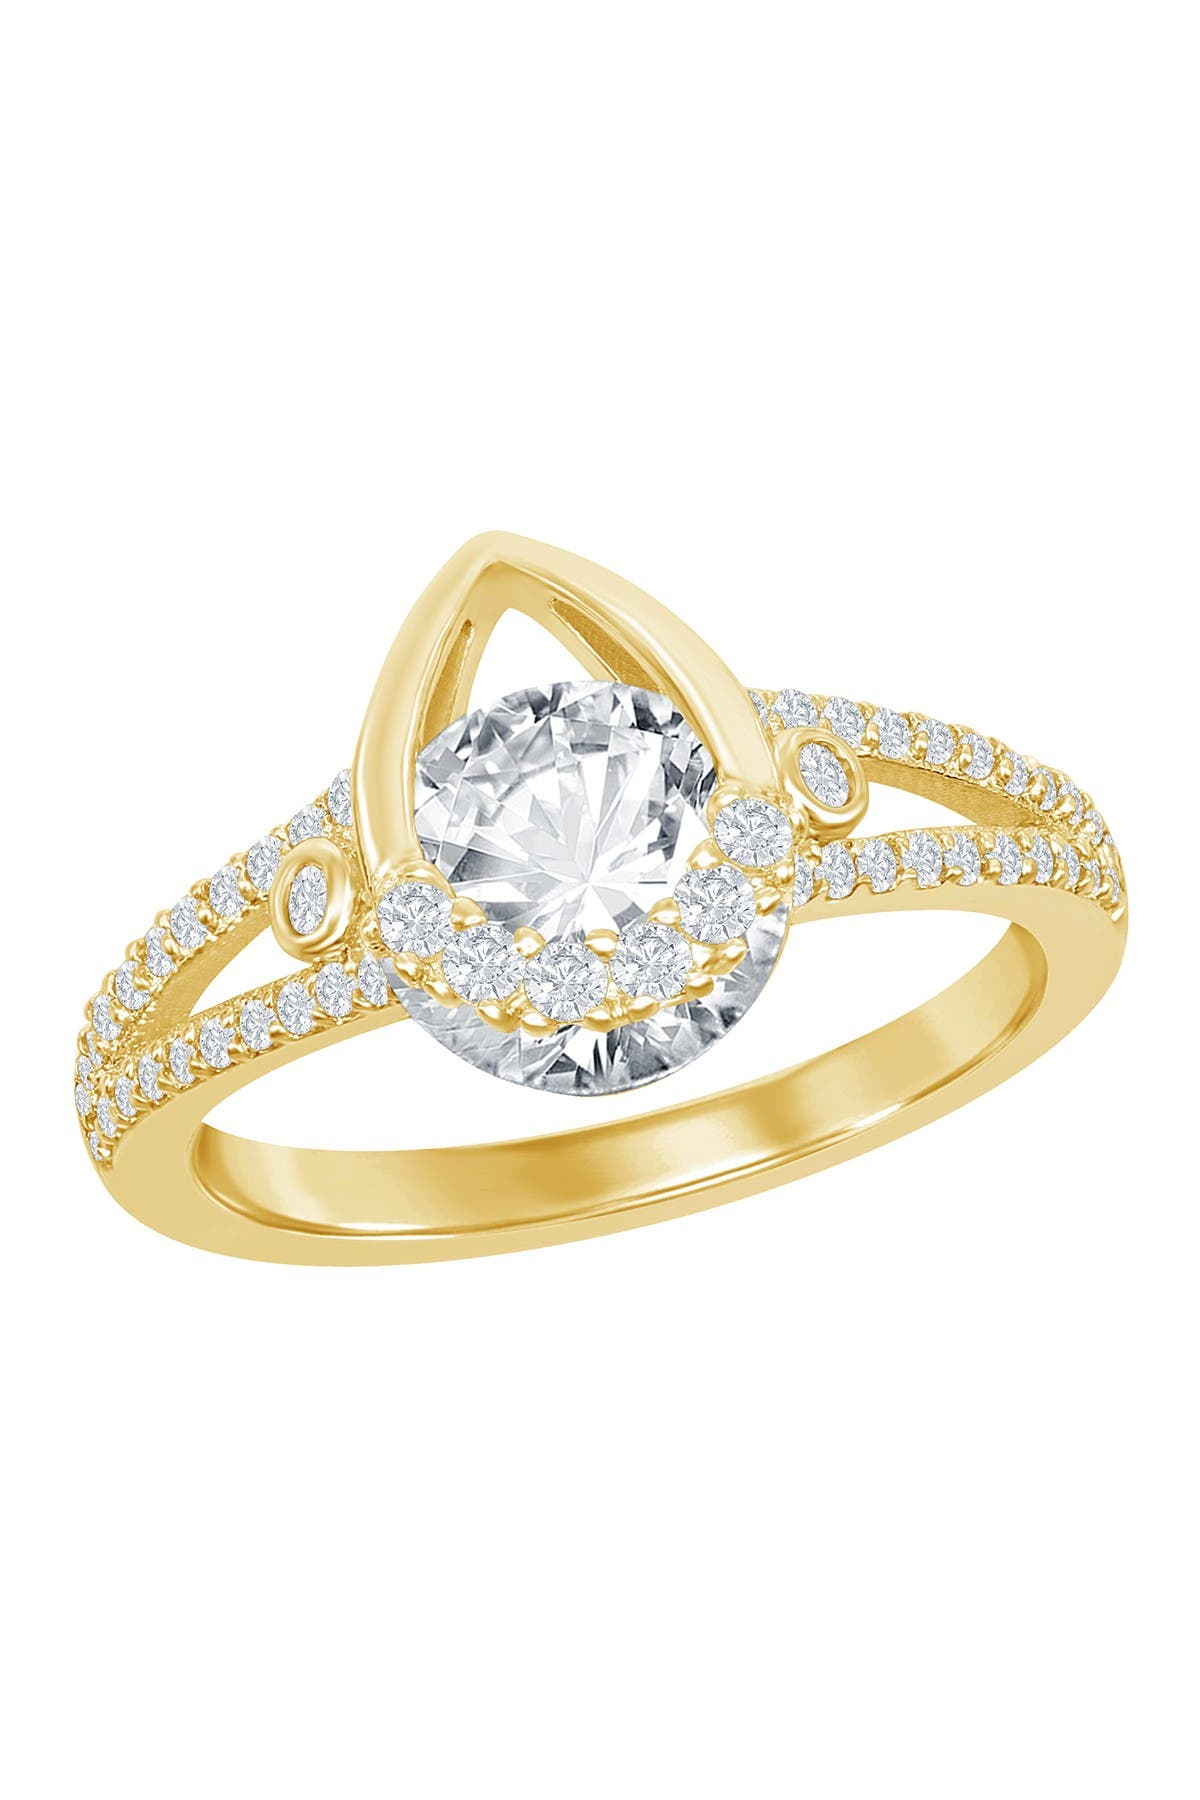 Image of Simona Jewelry Gold Plated Sterling Silver Pear Shaped Ring